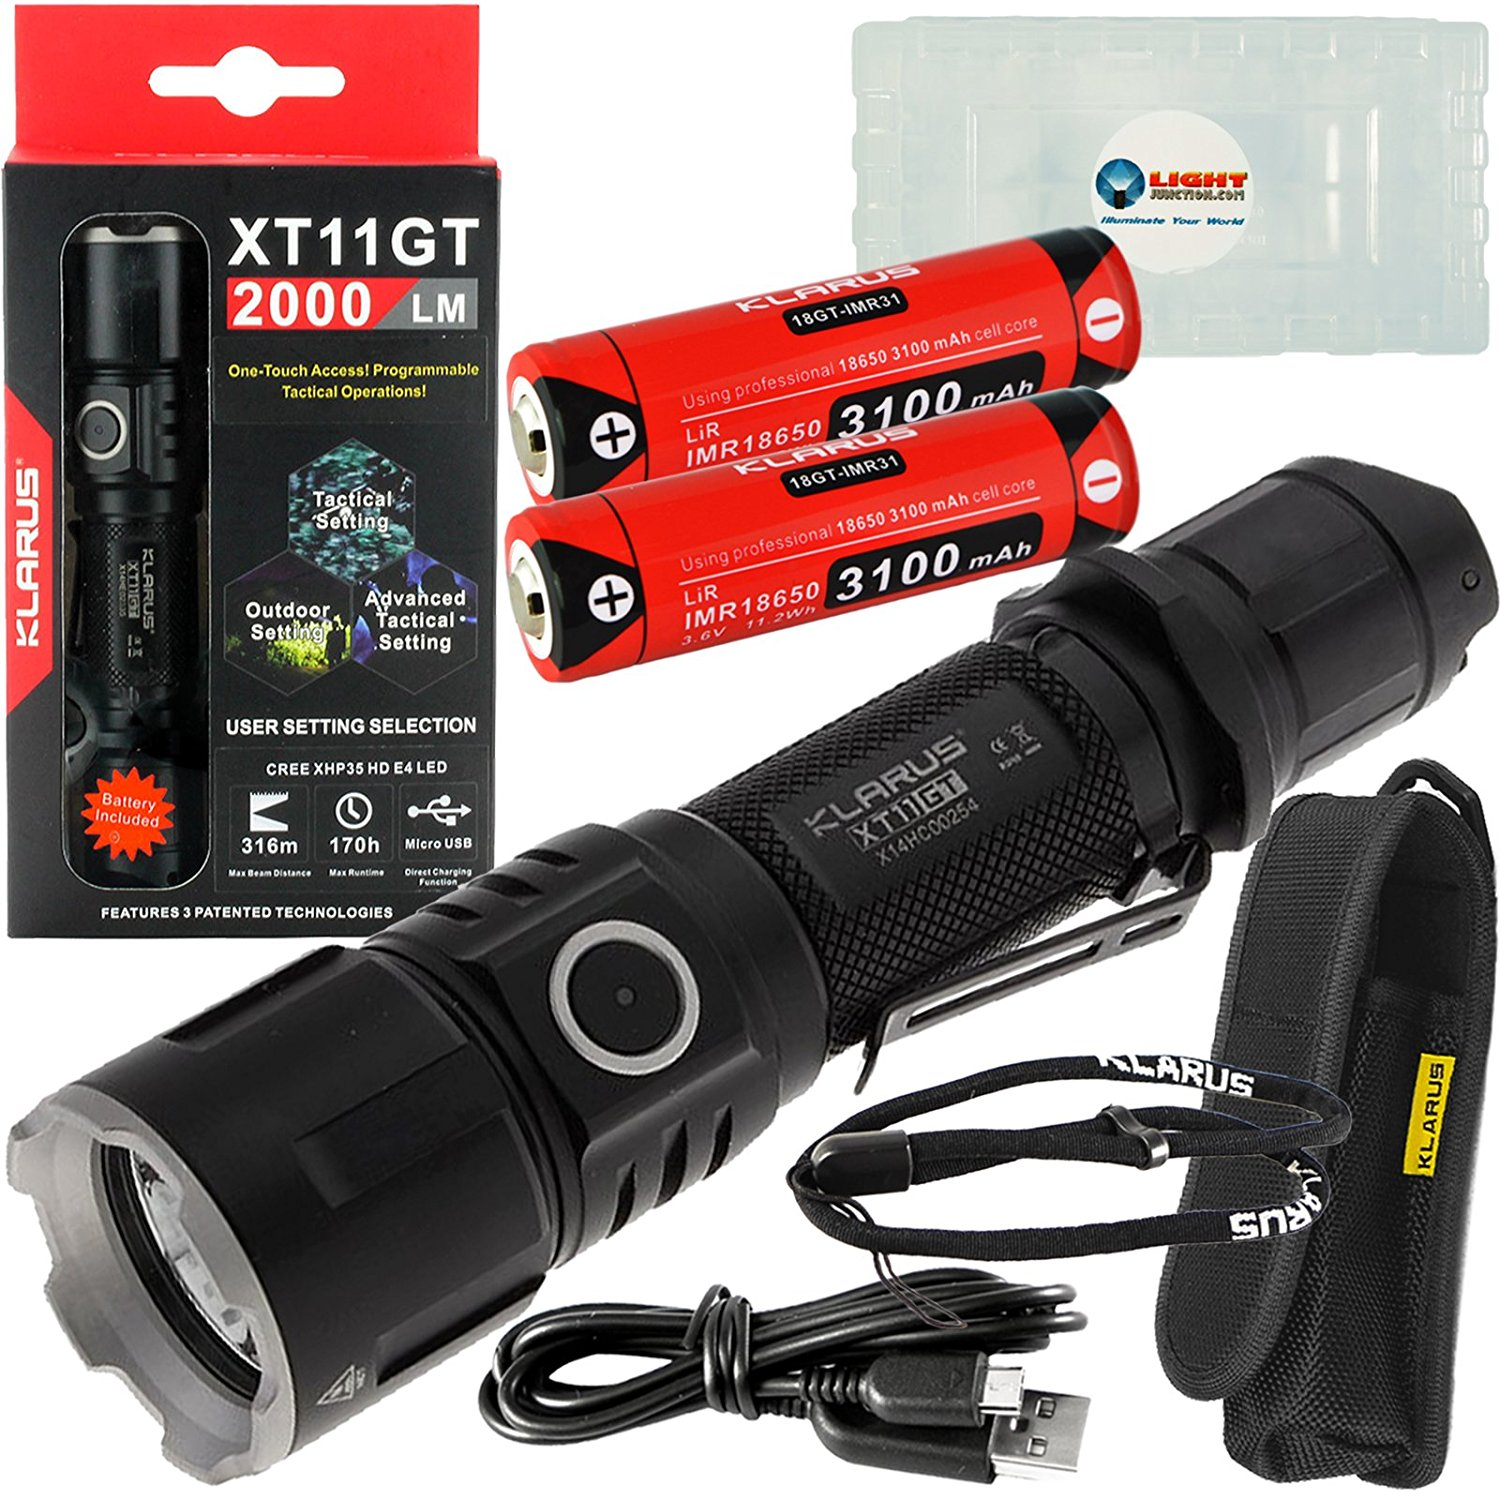 Klarus XT11GT Tactical Rechargeable Flashlight CREE XHP35 HD E4 LED 2000 Lumens w/ Extra IMR 18650 3100mAh Battery and Lightjunction Battery Case